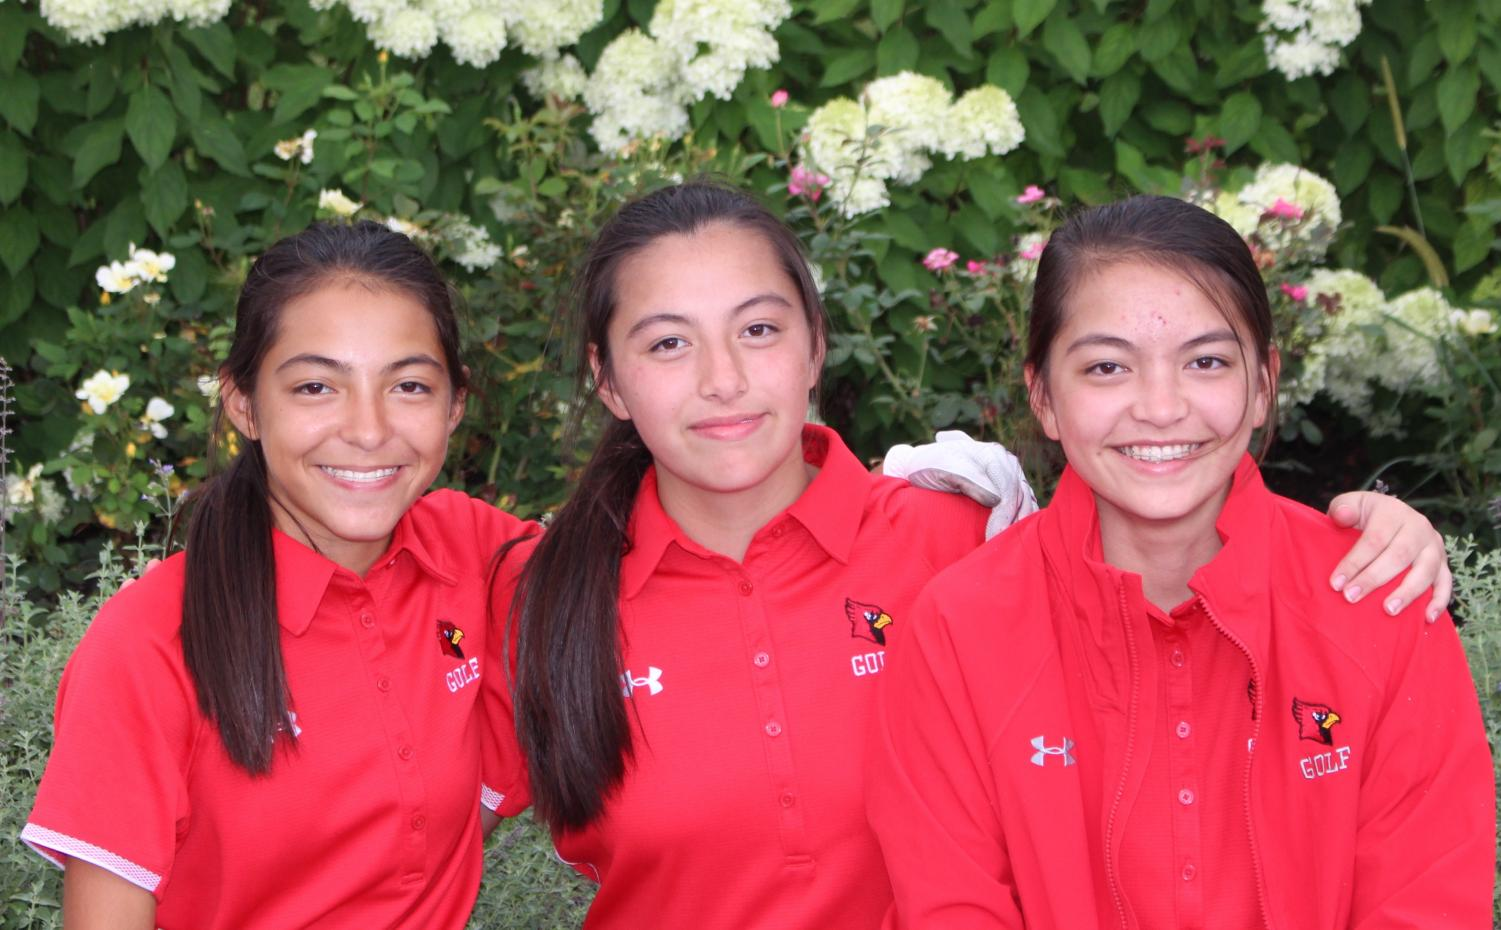 Naomi (left), Sophia (middle) and Annika Chan are triplets that are all a part of SHS girls golf team. These three don't let the competition of being on the same team affect their relationship as sisters.